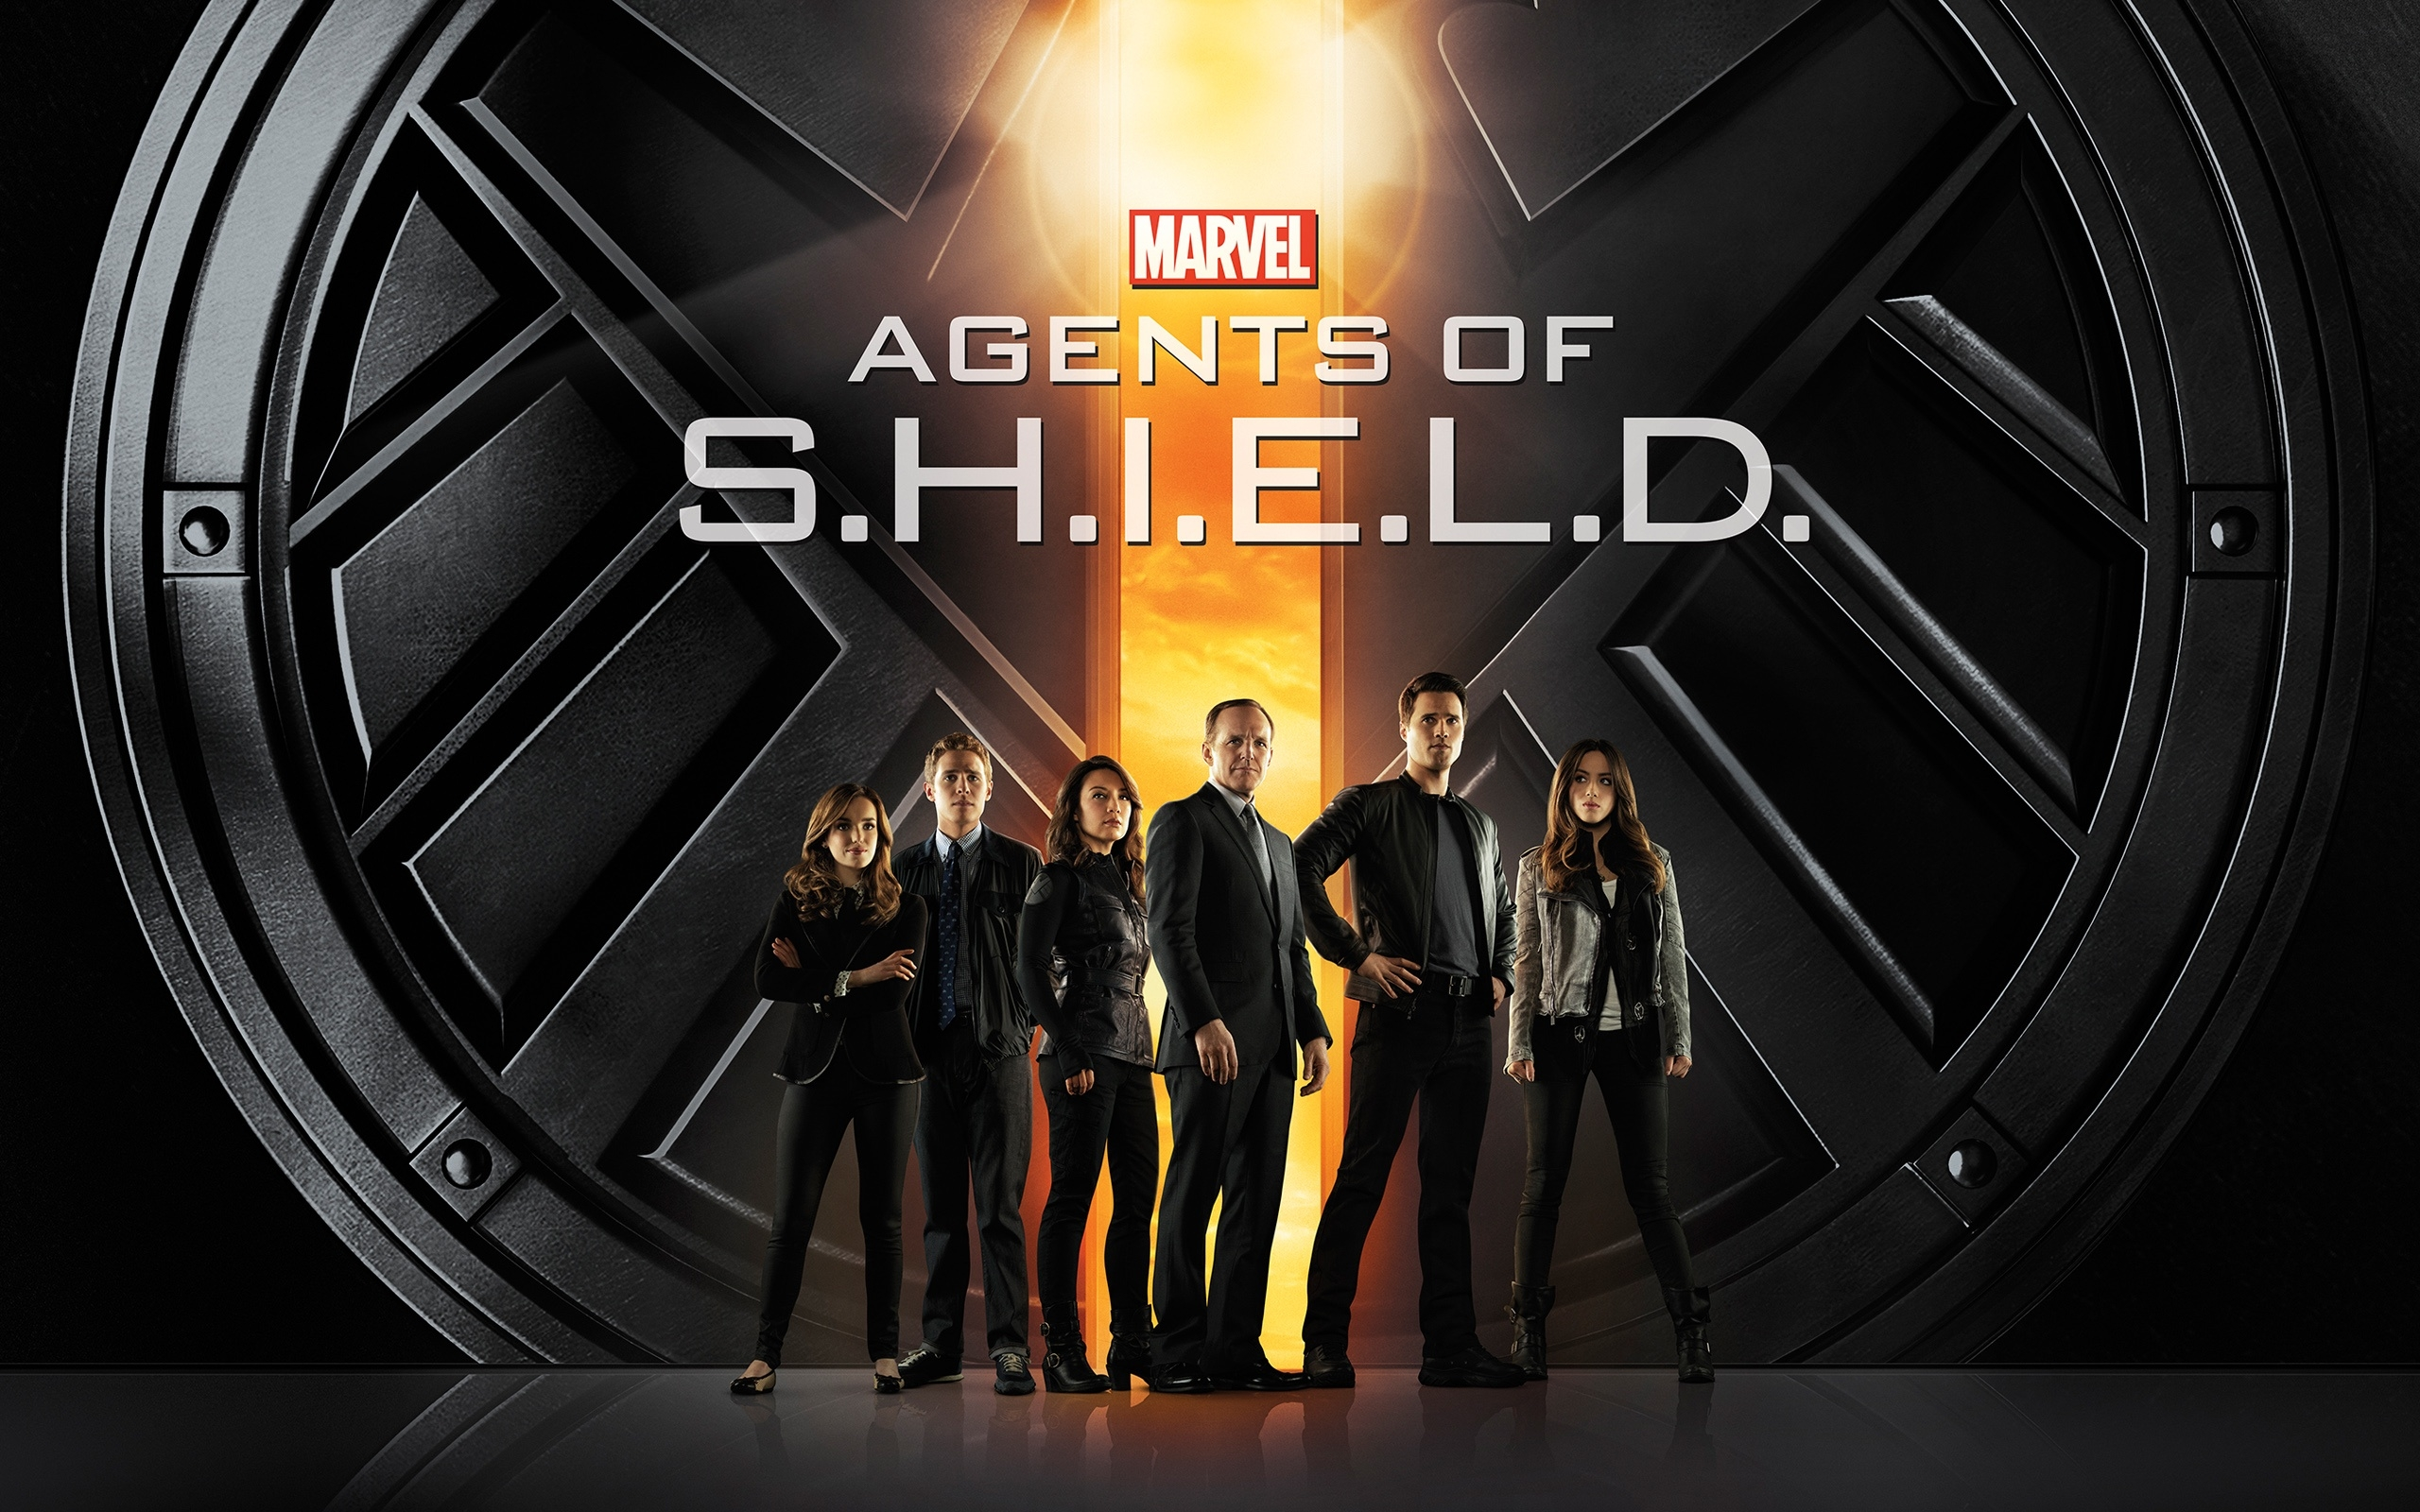 Agents of S.H.I.E.L.D. Season 6 Episode 3